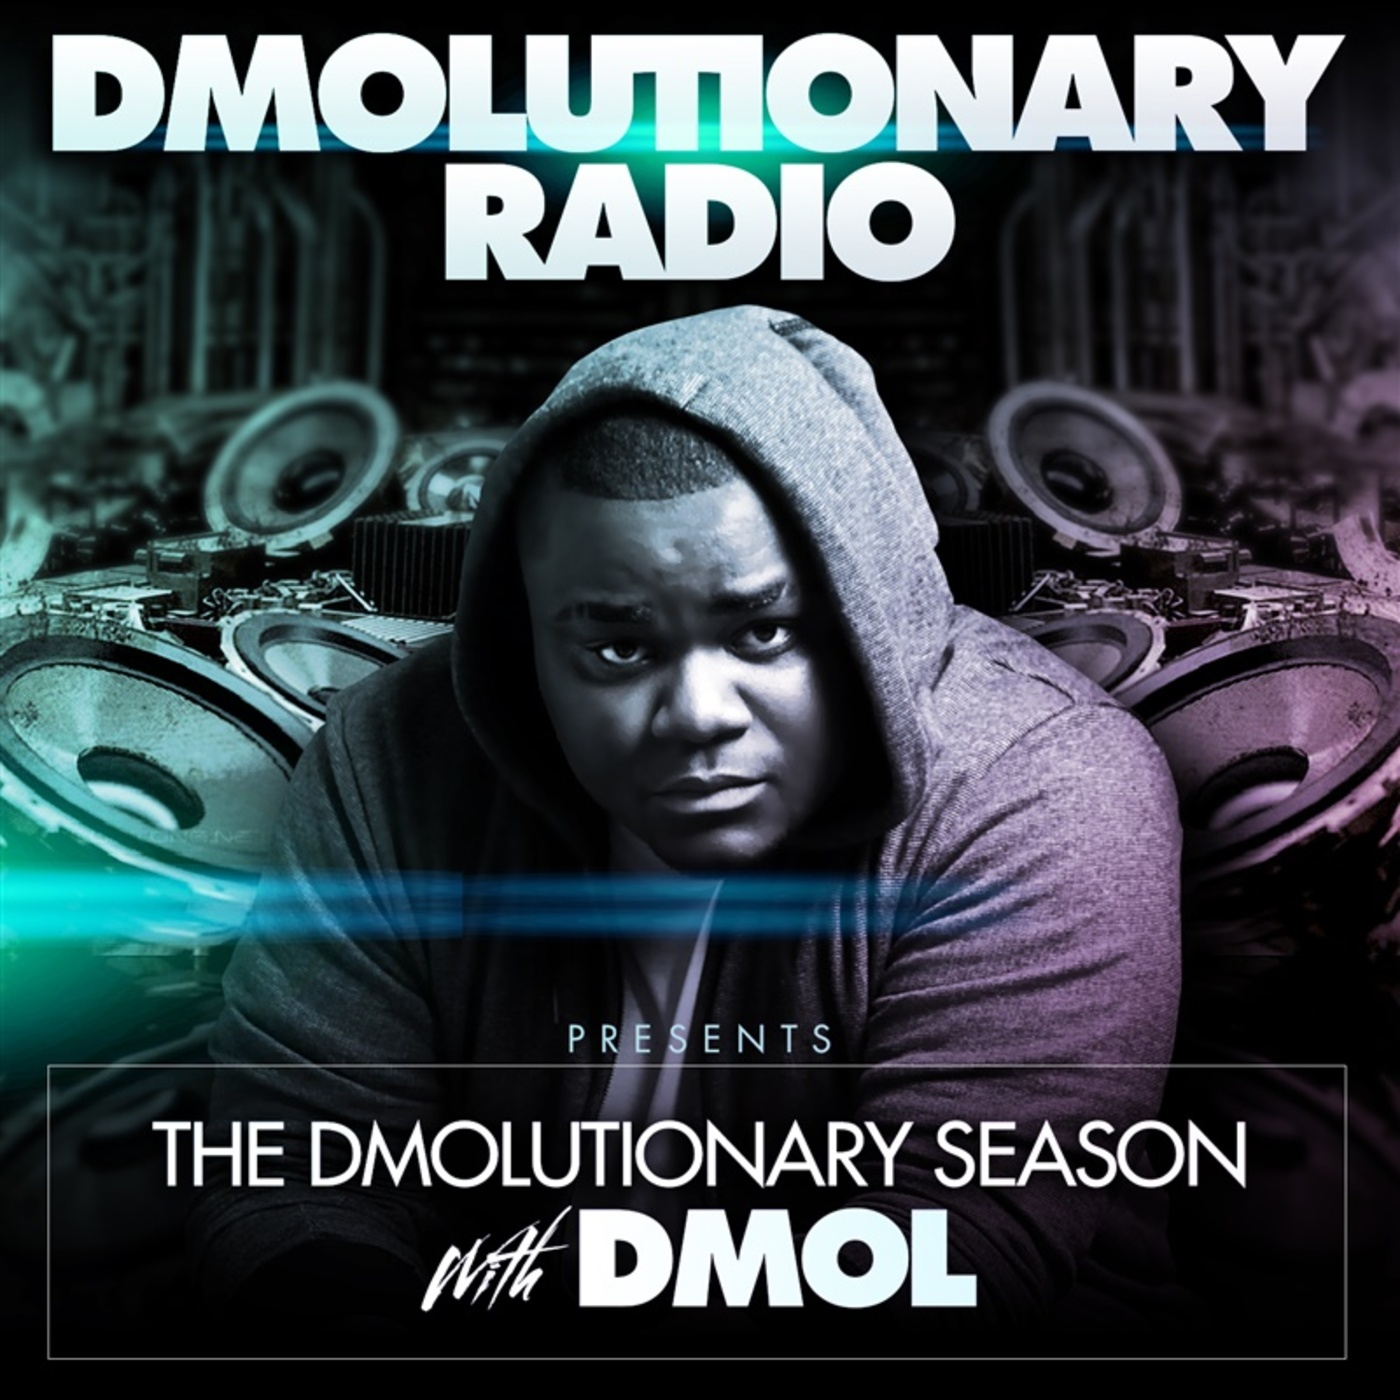 Dmolutionary Radio presents